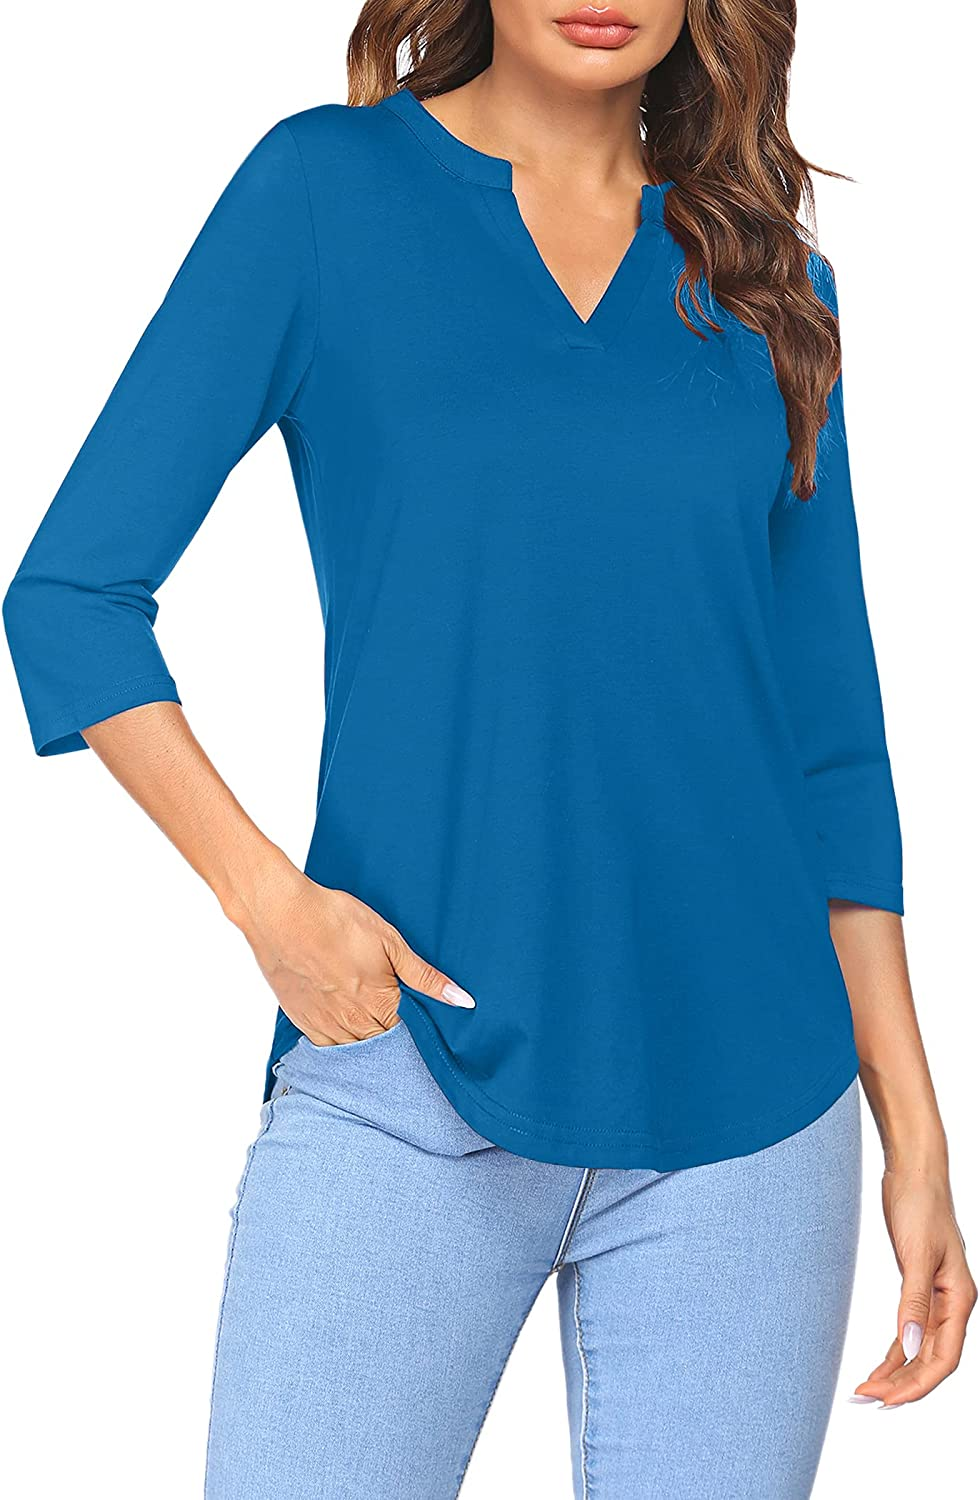 She Women's 3/4 Sleeve Shirts V Neck Casual Henley Work Tops Blouses